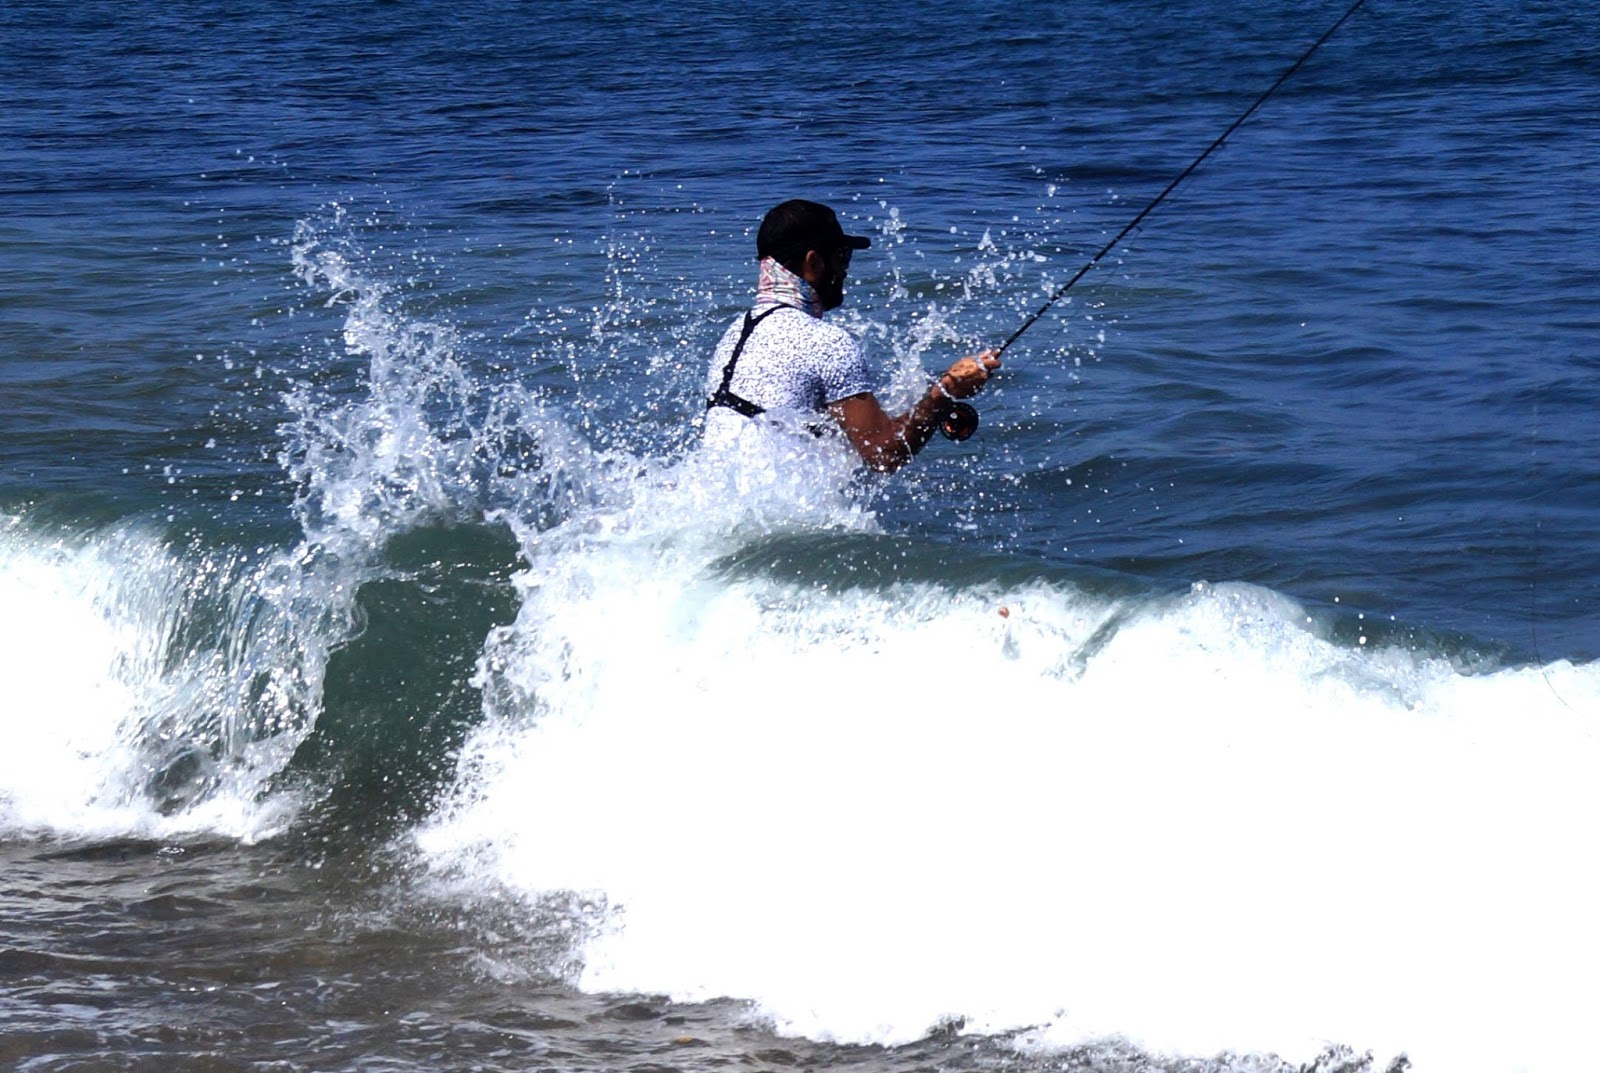 Ebi fisher saltwater fly fishing puerto vallarta mexico for Saltwater fly fishing